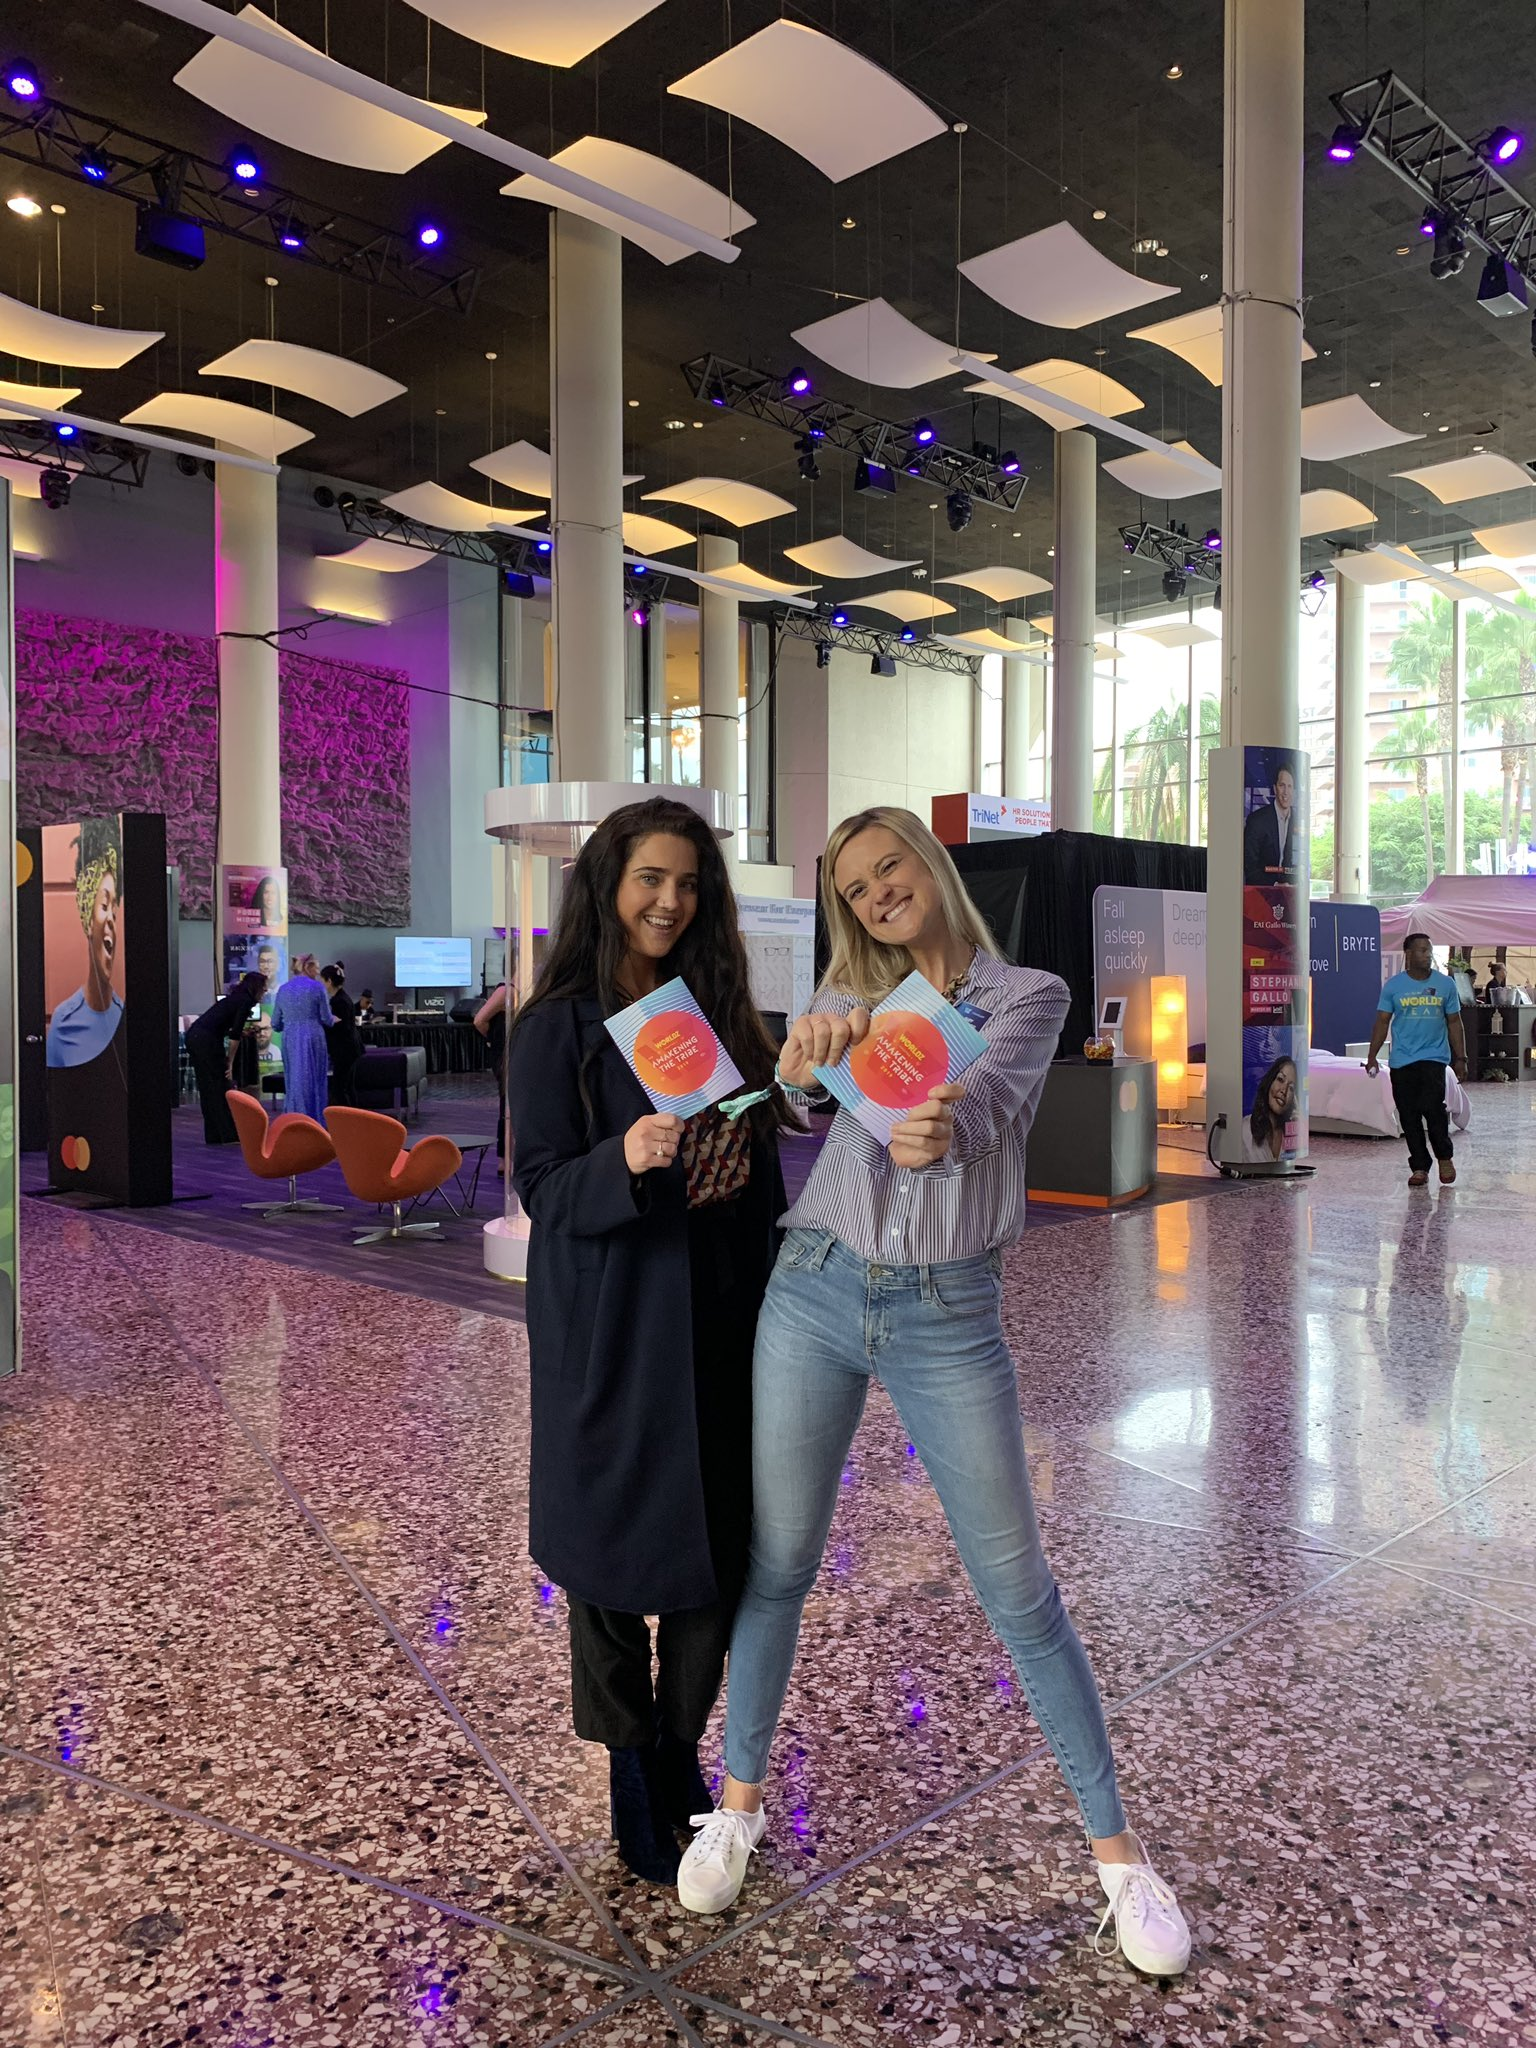 💥 Today we're at @worldztribe, a #summit and community that connects you to the world's most influential #marketing and cultural #leaders to learn, build your network, and elevate your #career! #WORLDZ https://t.co/Vc9kY3dHH7